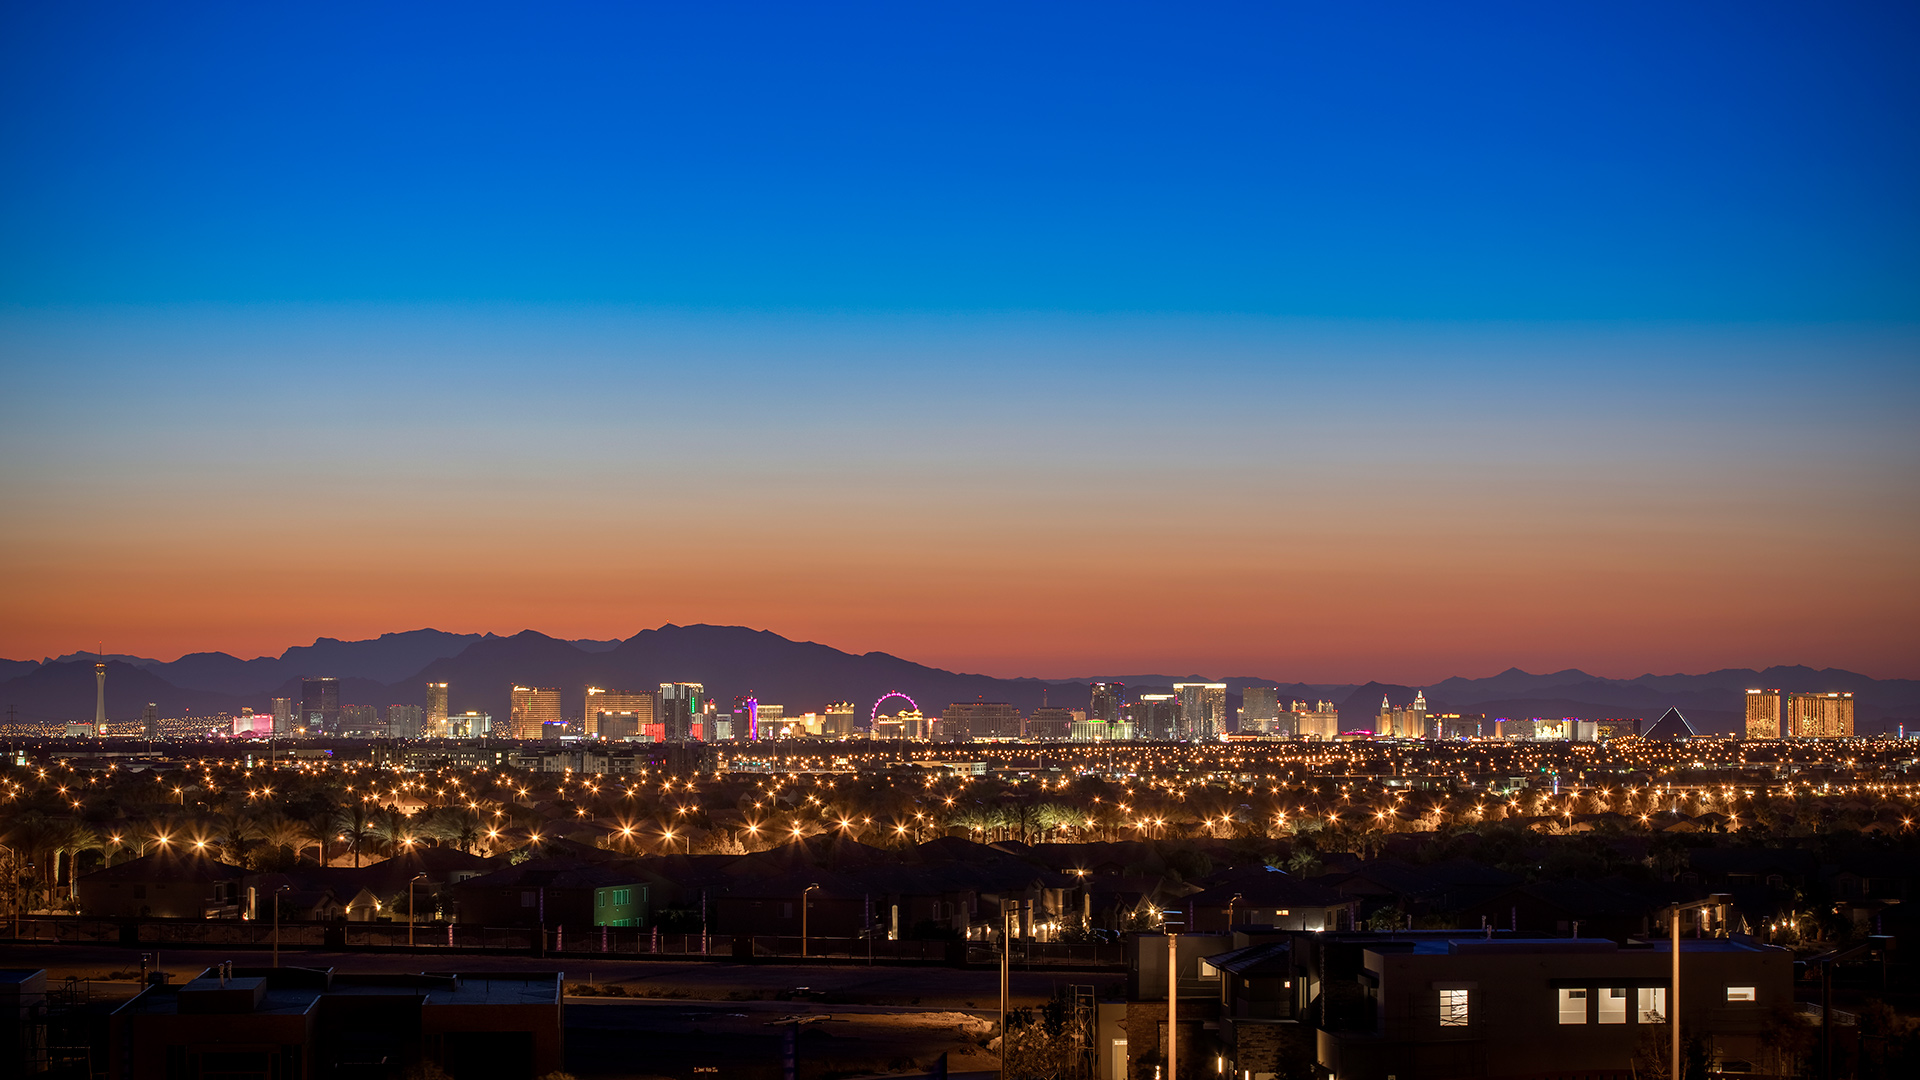 Convenient to the exciting Las Vegas Strip with fine dining, world-class entertainment and gaming.